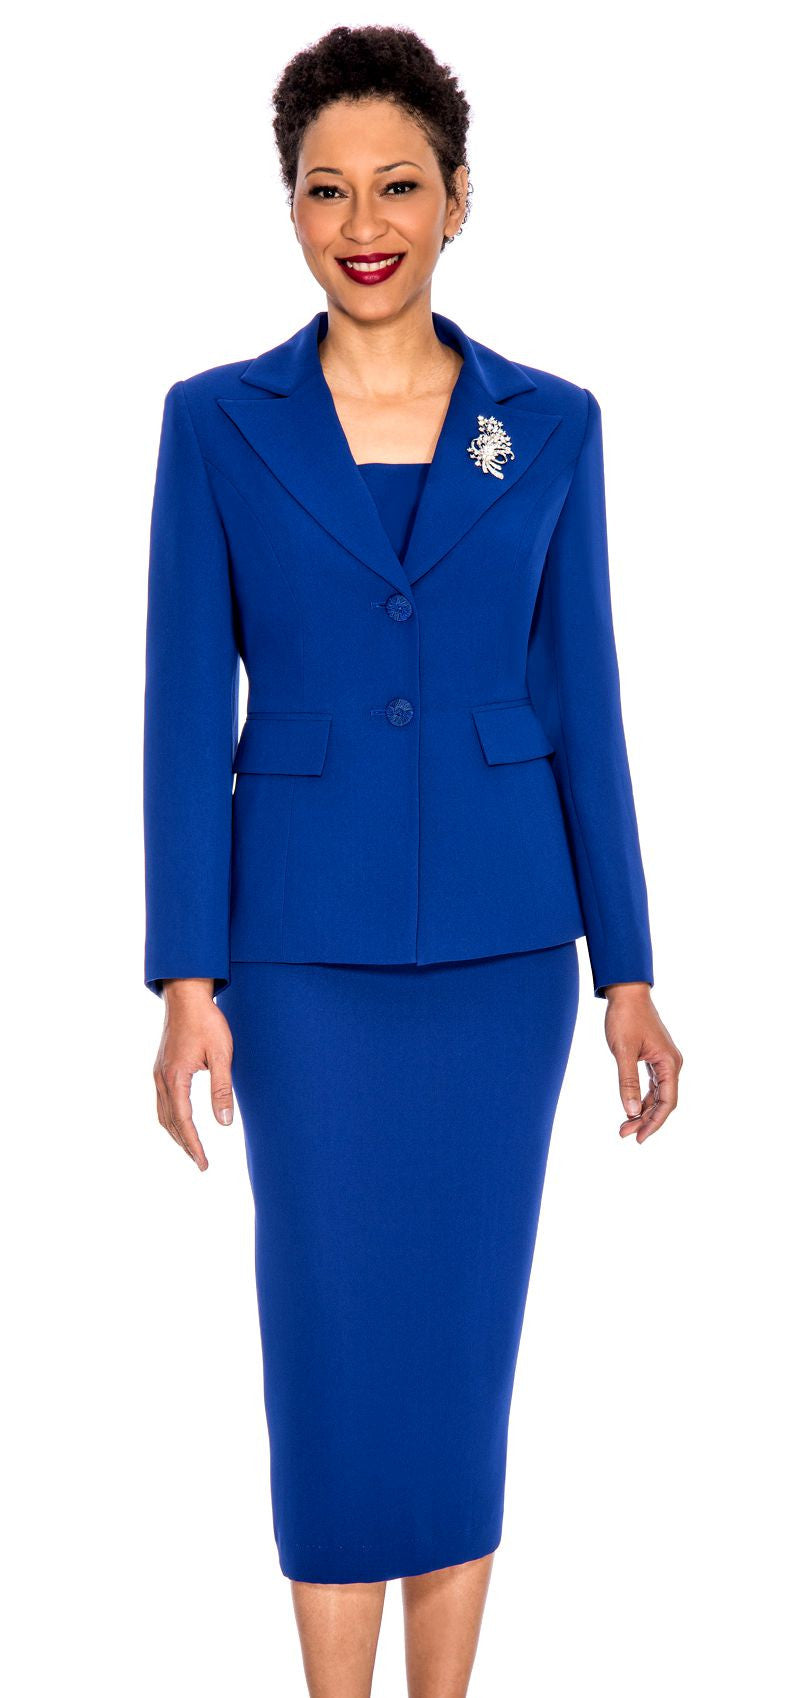 Giovanna Usher Suit 0710-Royal Blue - Church Suits For Less